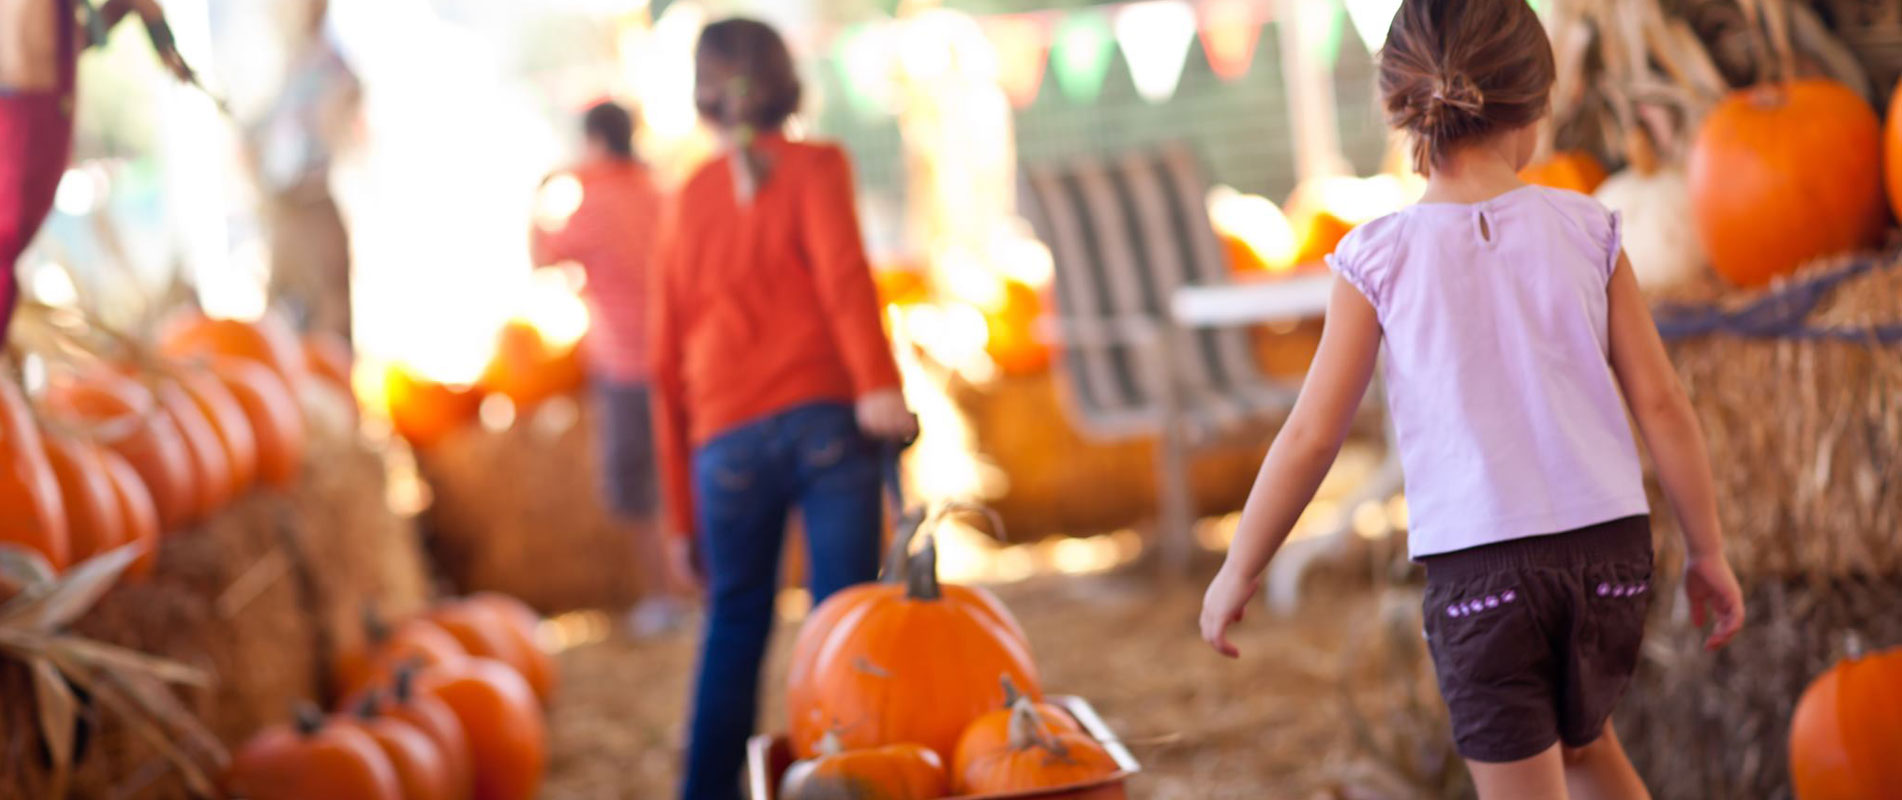 Fall Festival at Red, White and Blues Farm